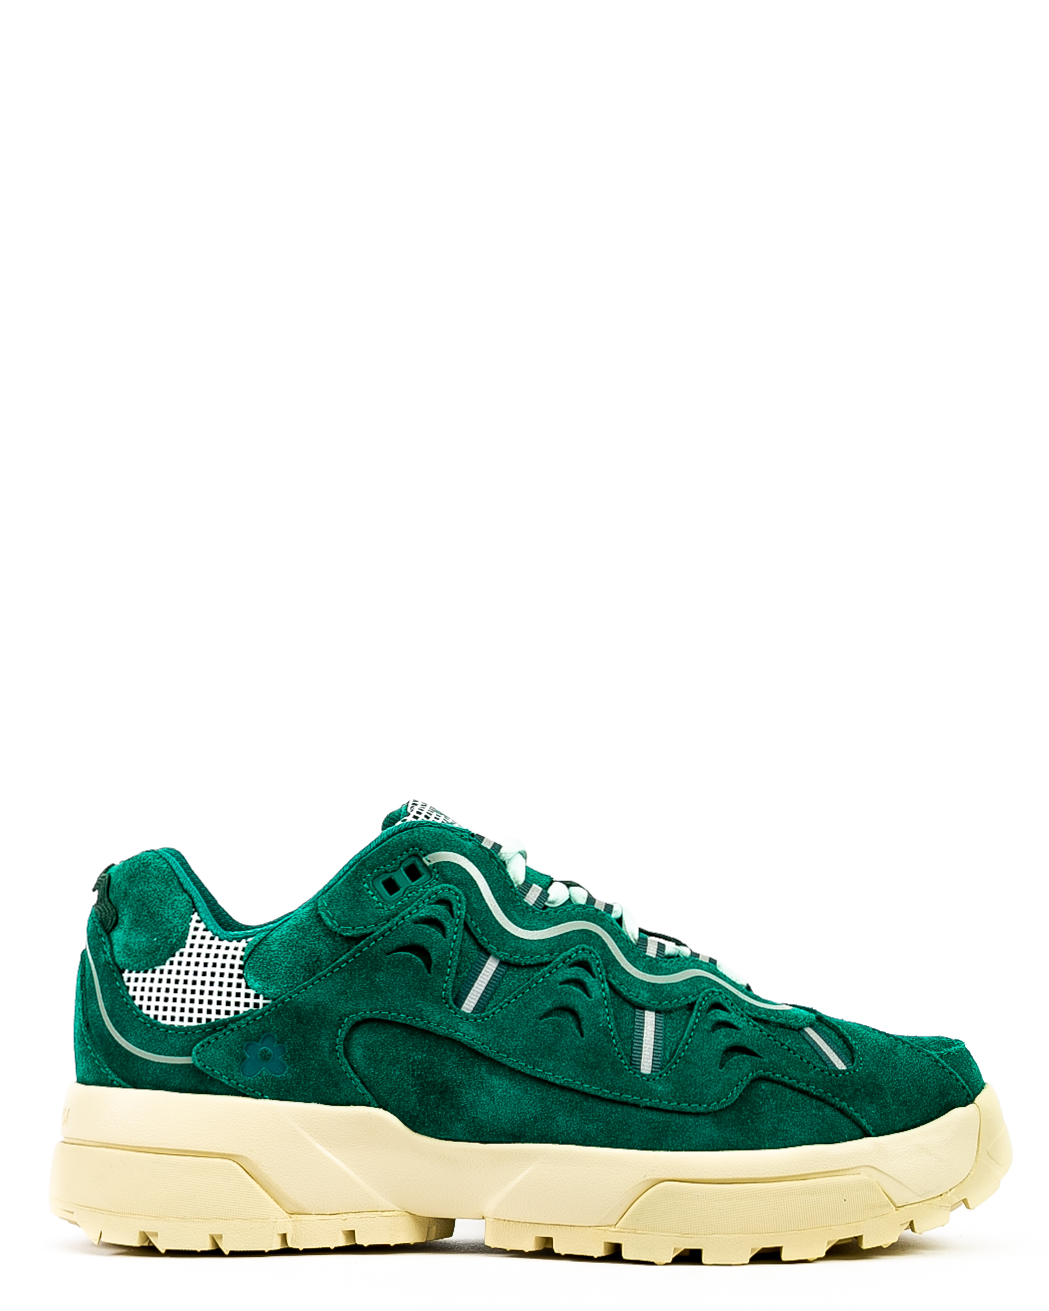 GOLF le FLEUR* Gianno Suede Evergreen/White Asparagus